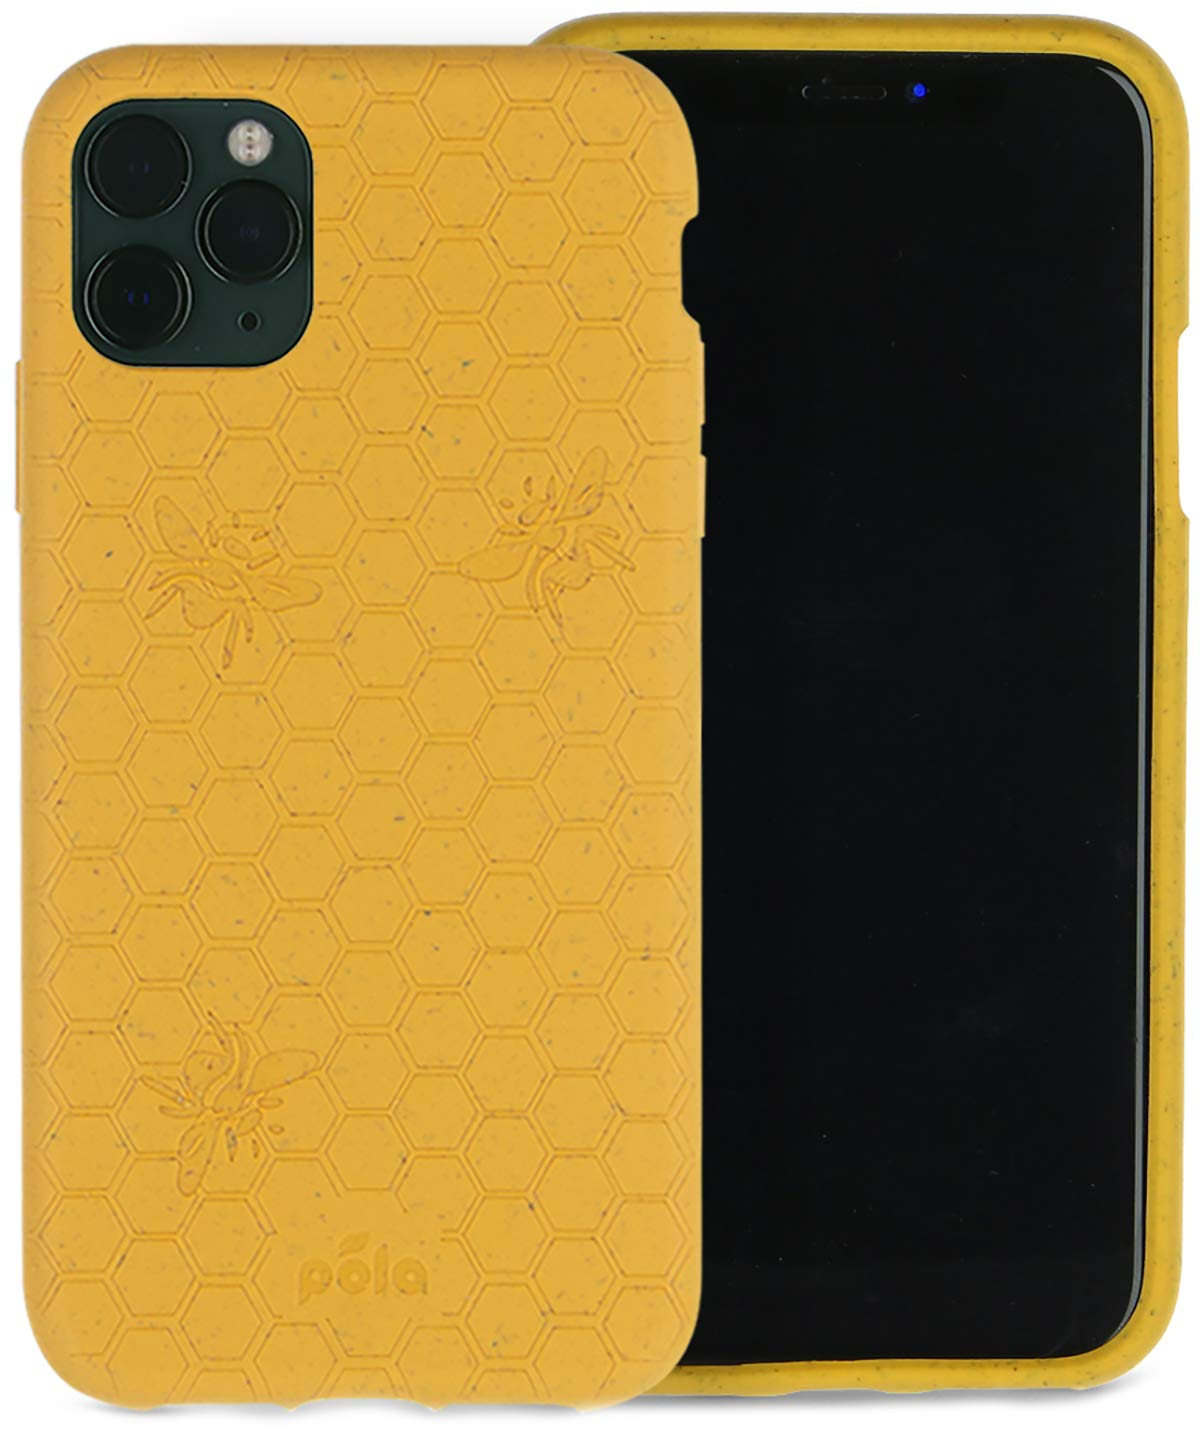 Pela: Phone Case for iPhone 11 Pro - 100% Compostable and Biodegradable - Eco-Friendly - Made from Plants (11 Pro Honey Bee)